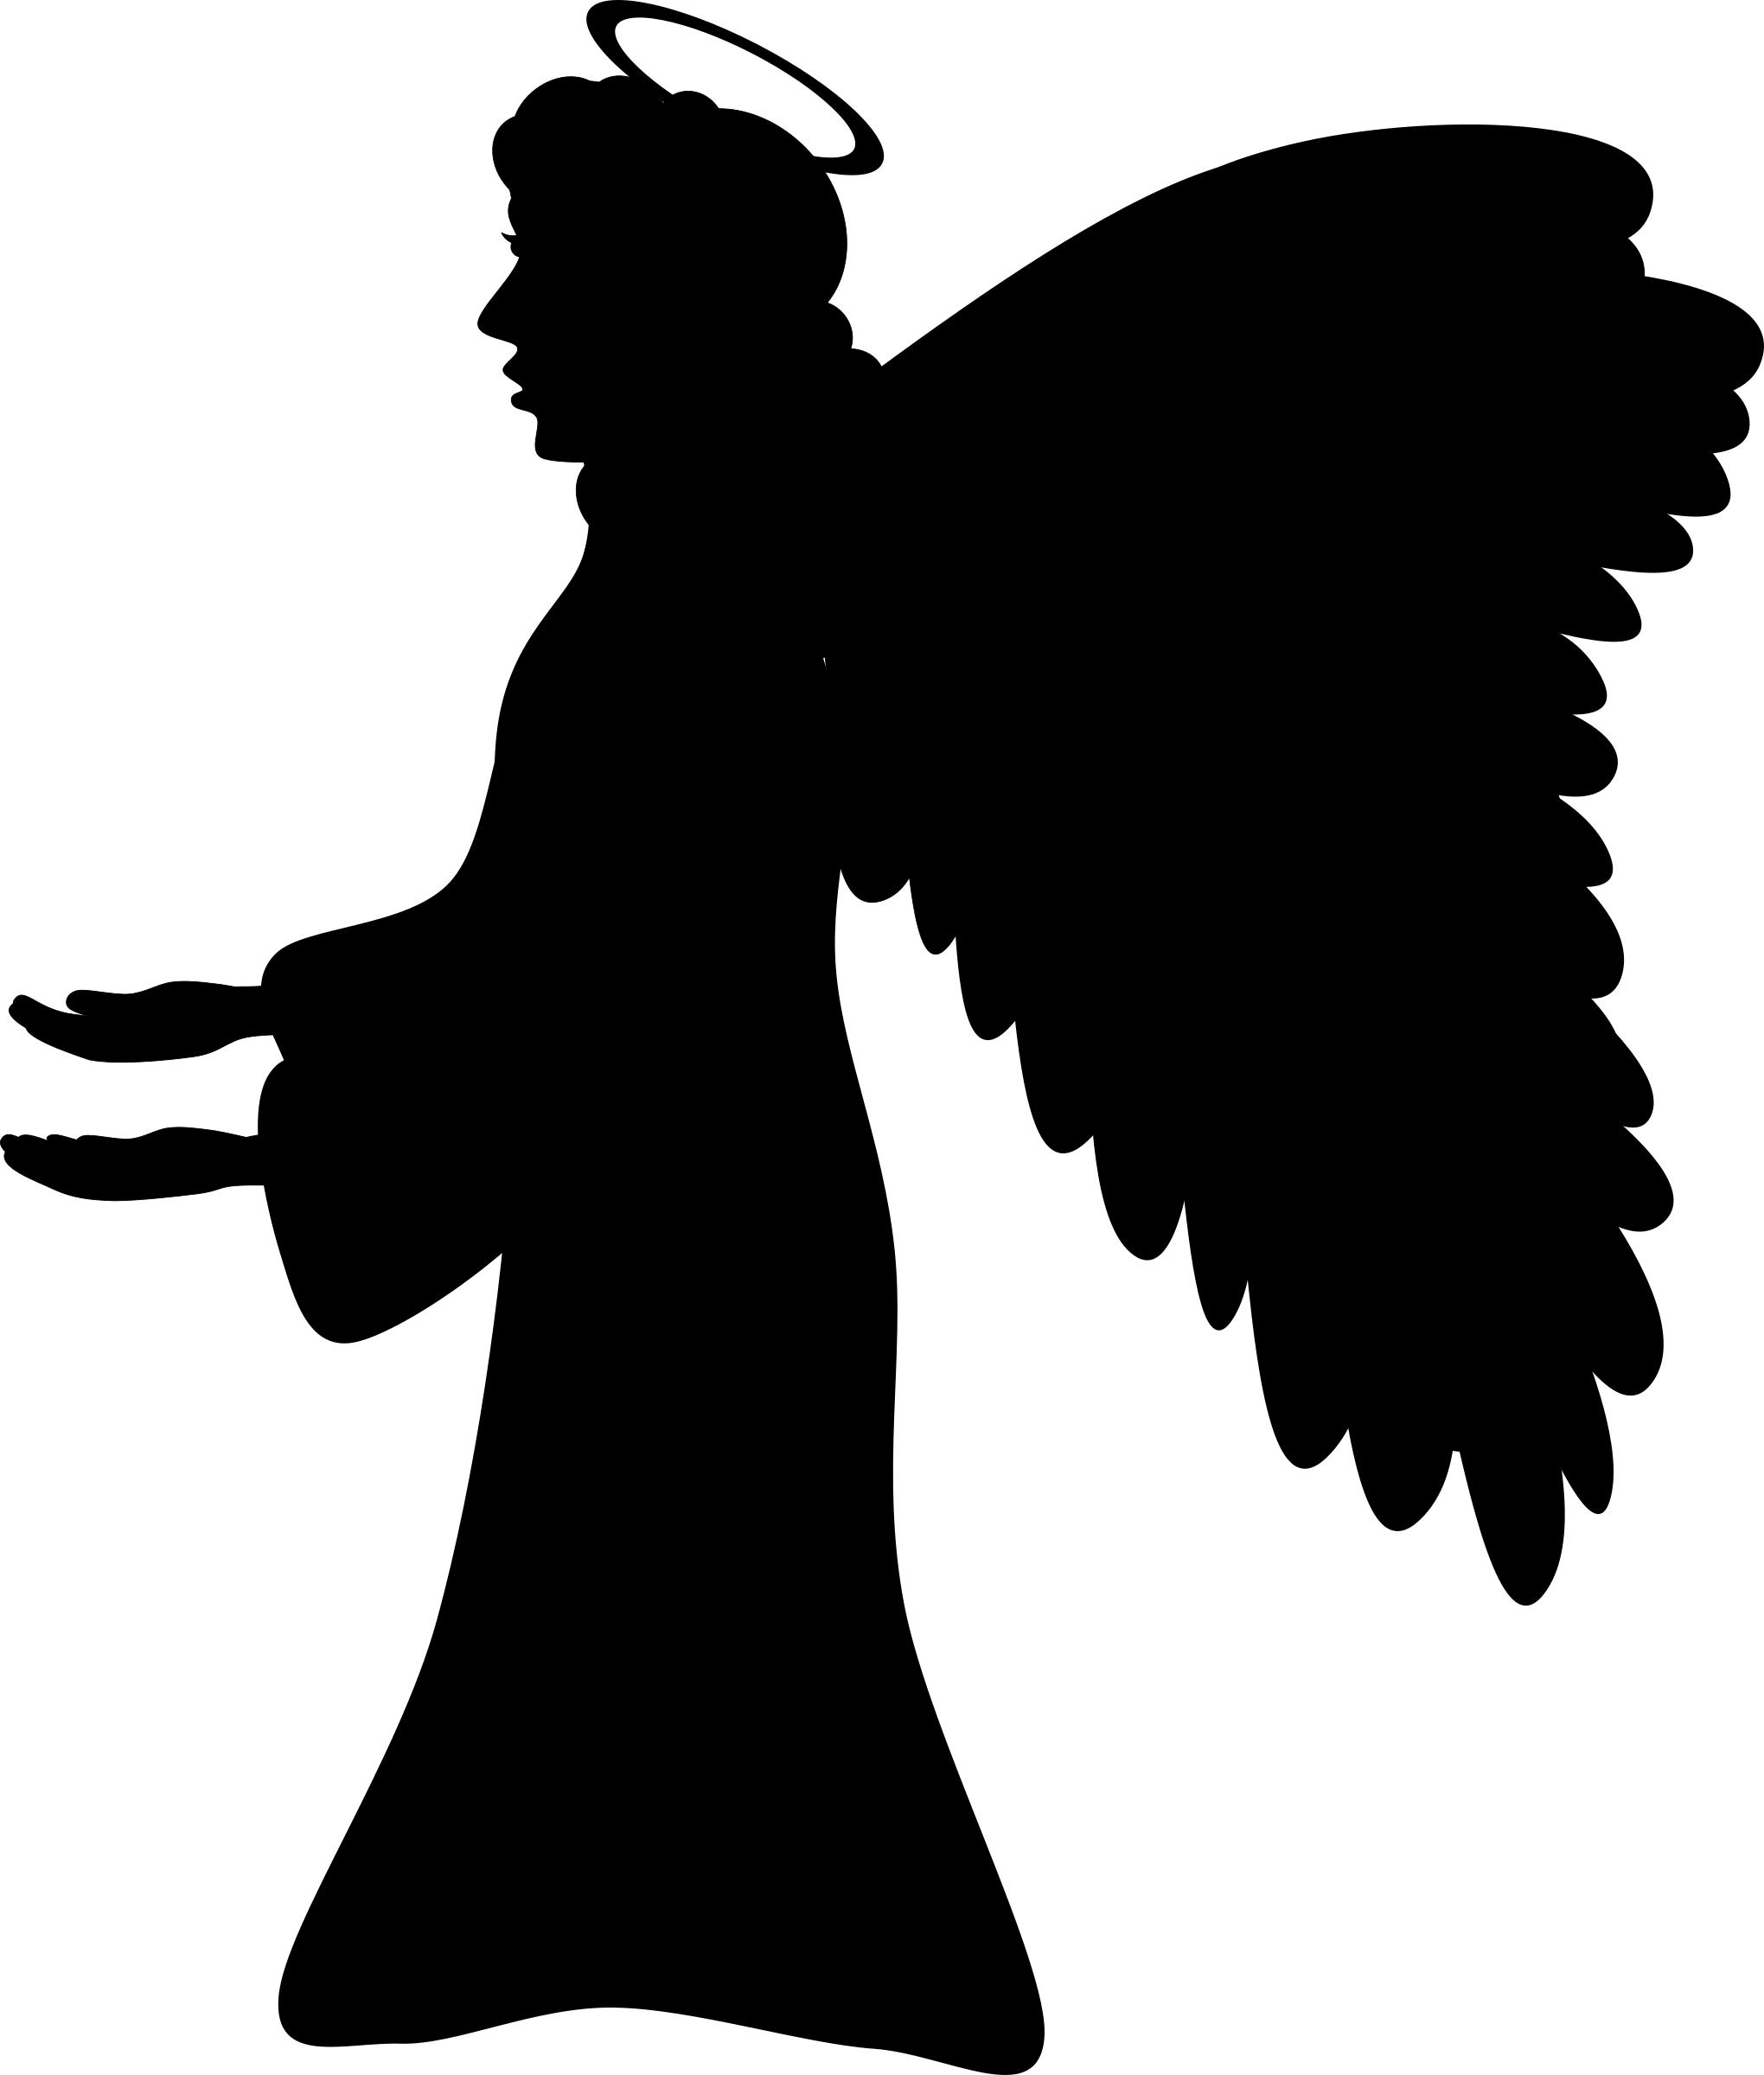 angel silhouette clip art free at getdrawings com free for rh getdrawings com angel clipart free black and white angel clipart photos